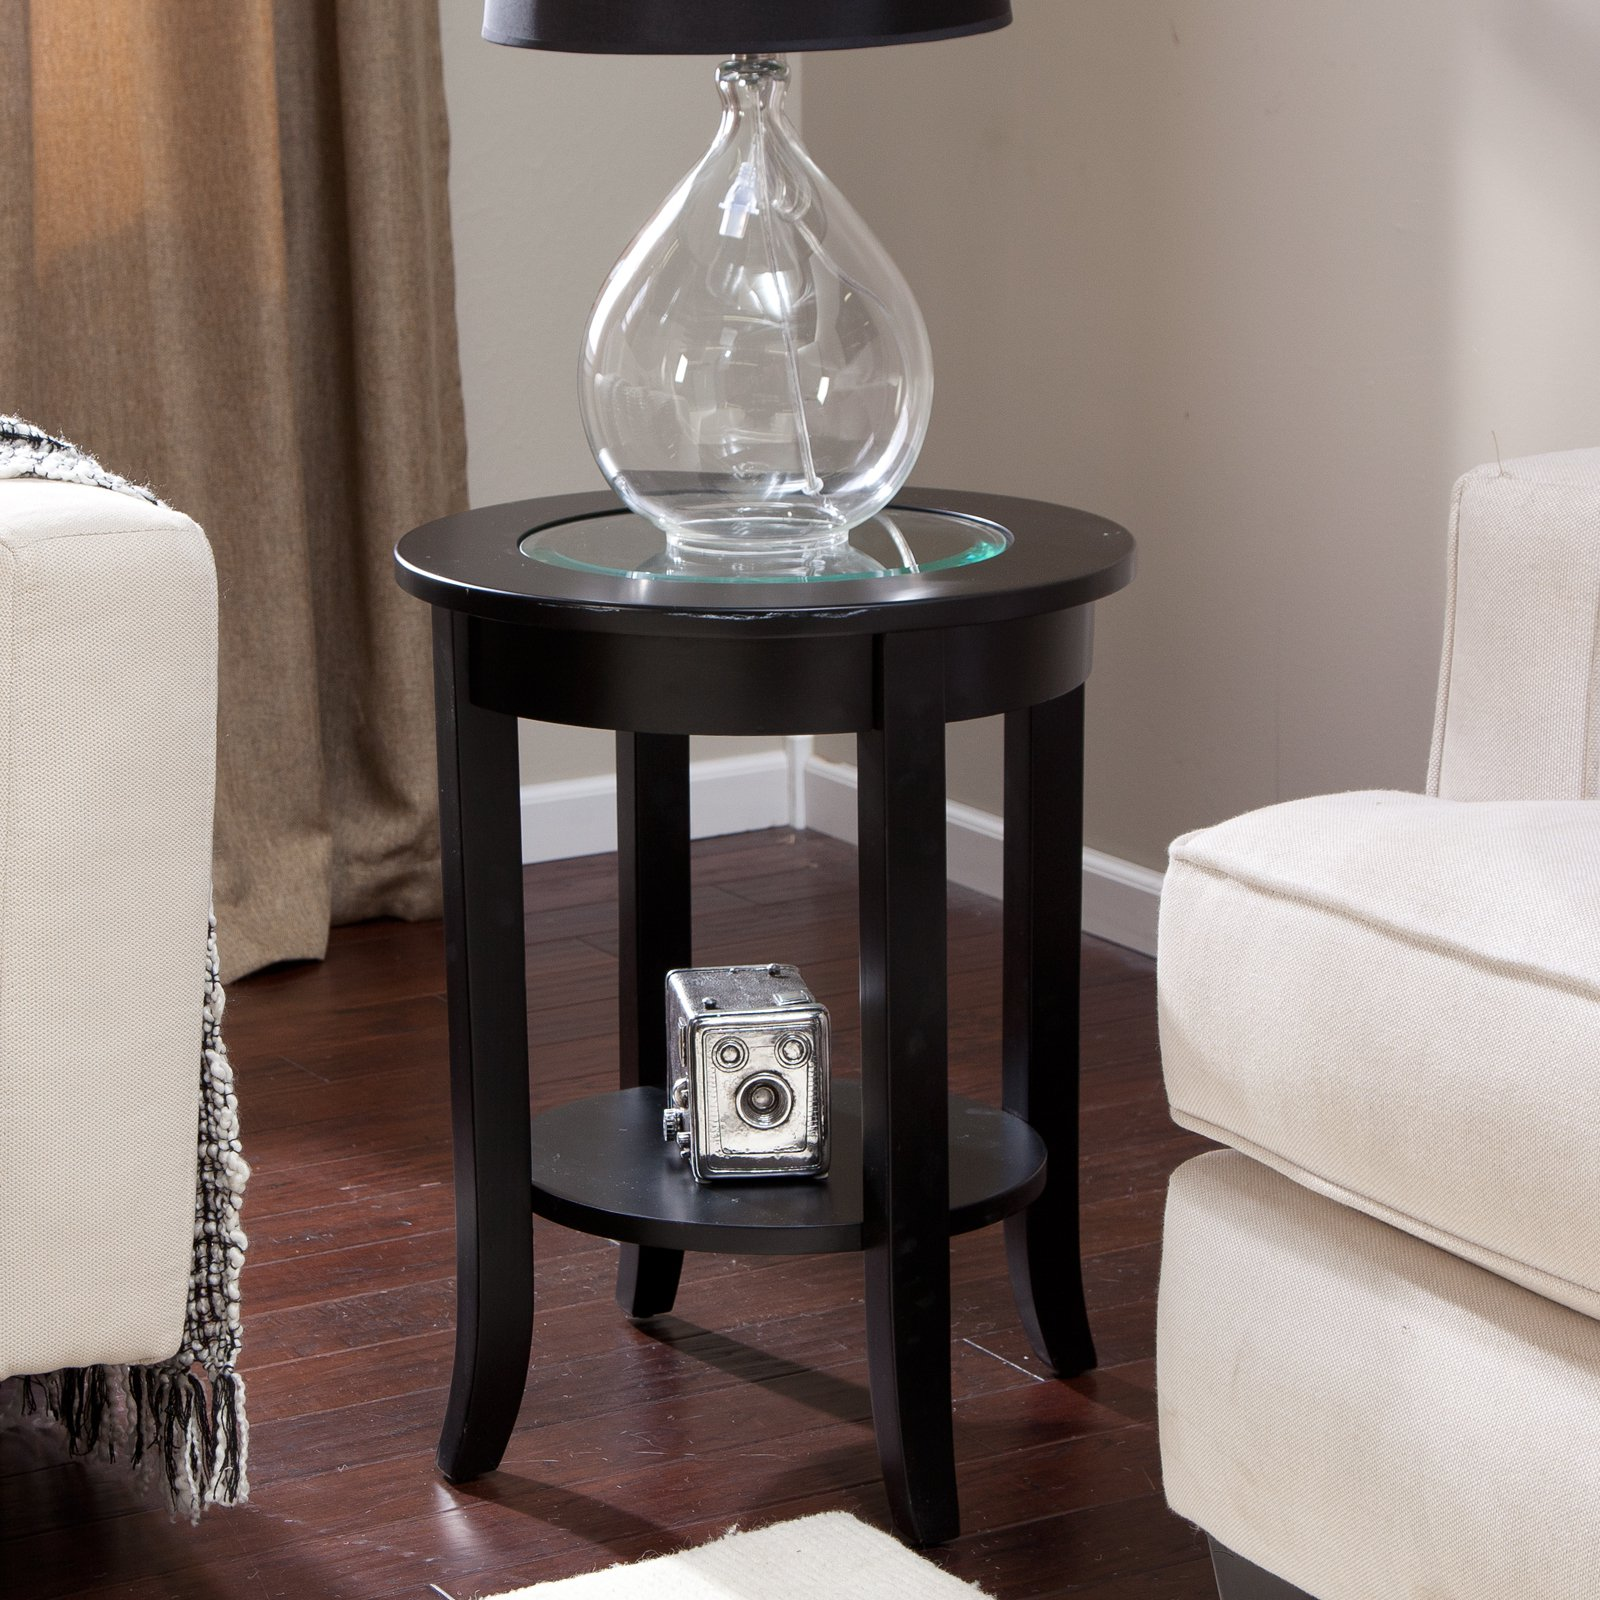 furniture living room end tables simple and beautiful hungonu webster round table with wooden floor pottery barn modern coffee painted wood accent big umbrellas for shade